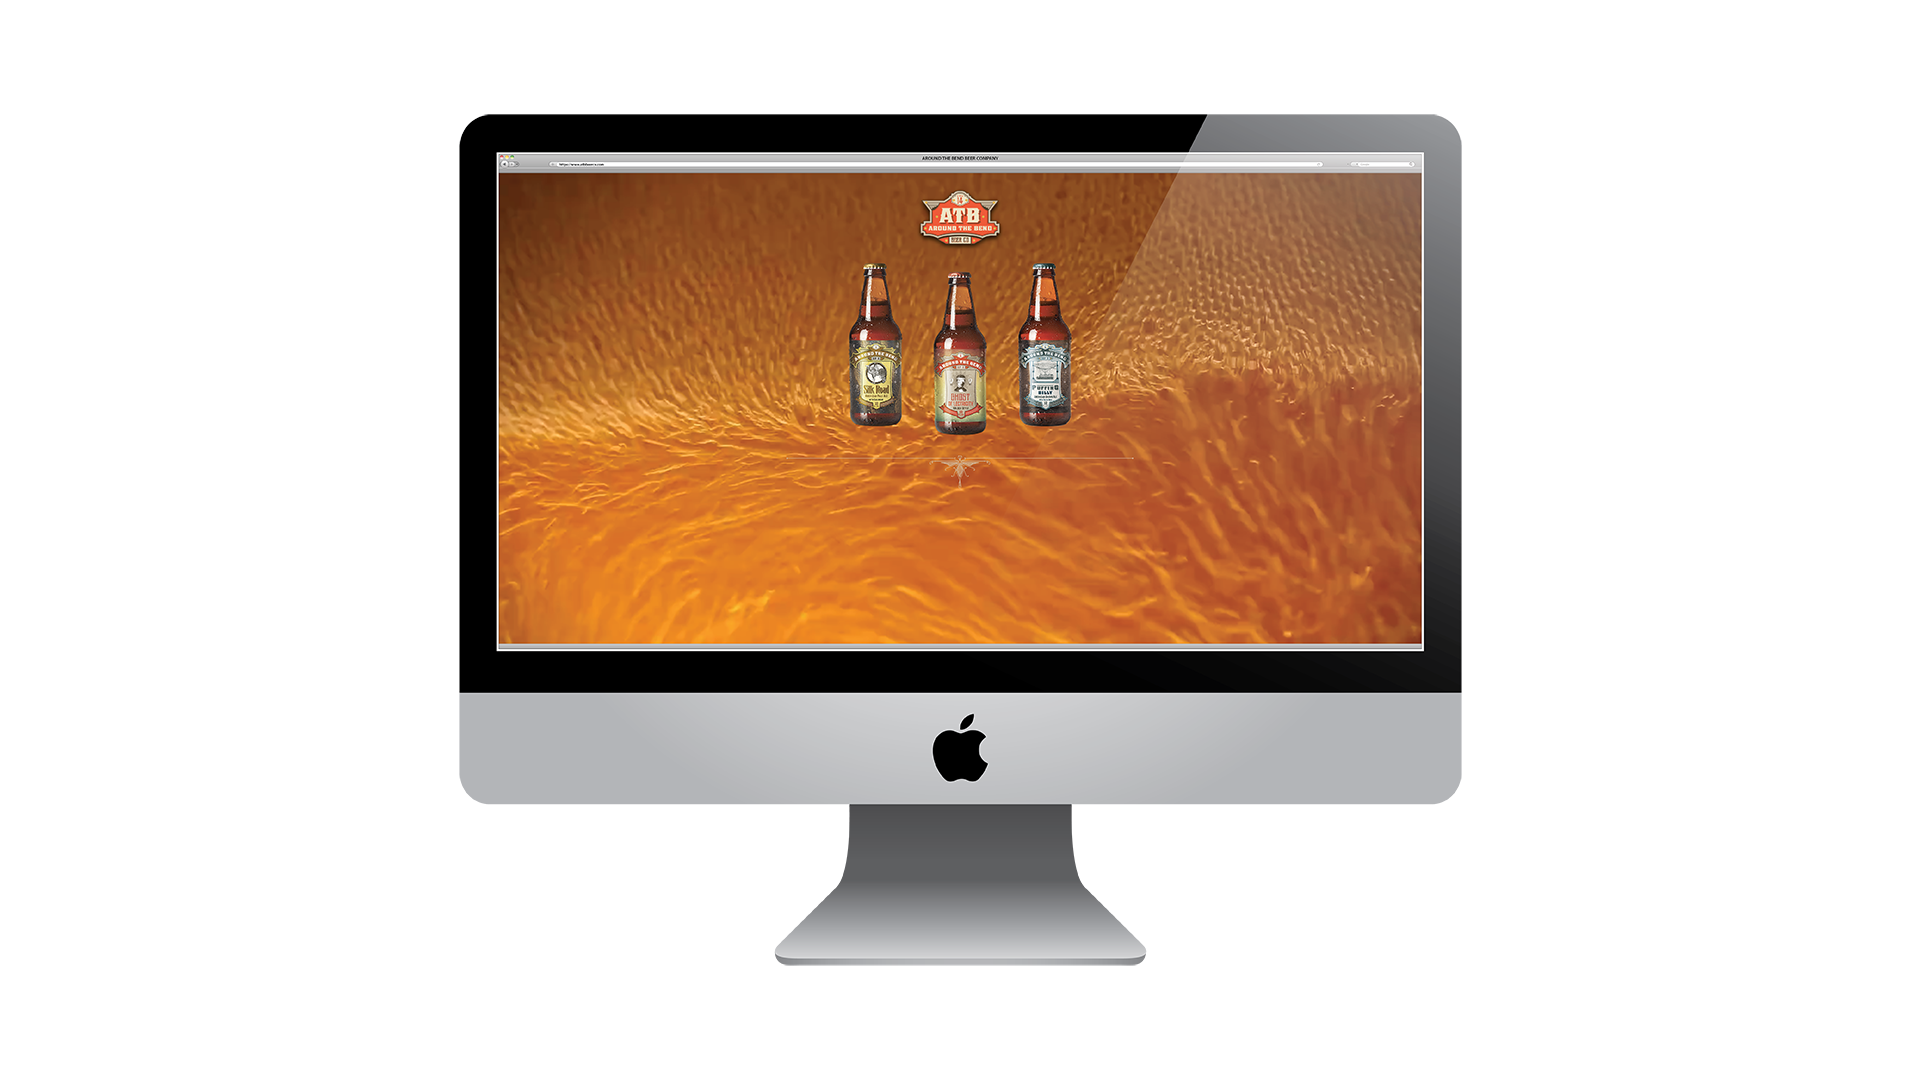 Oz Mfg. Company Around The Bend Beer Co. Website Design